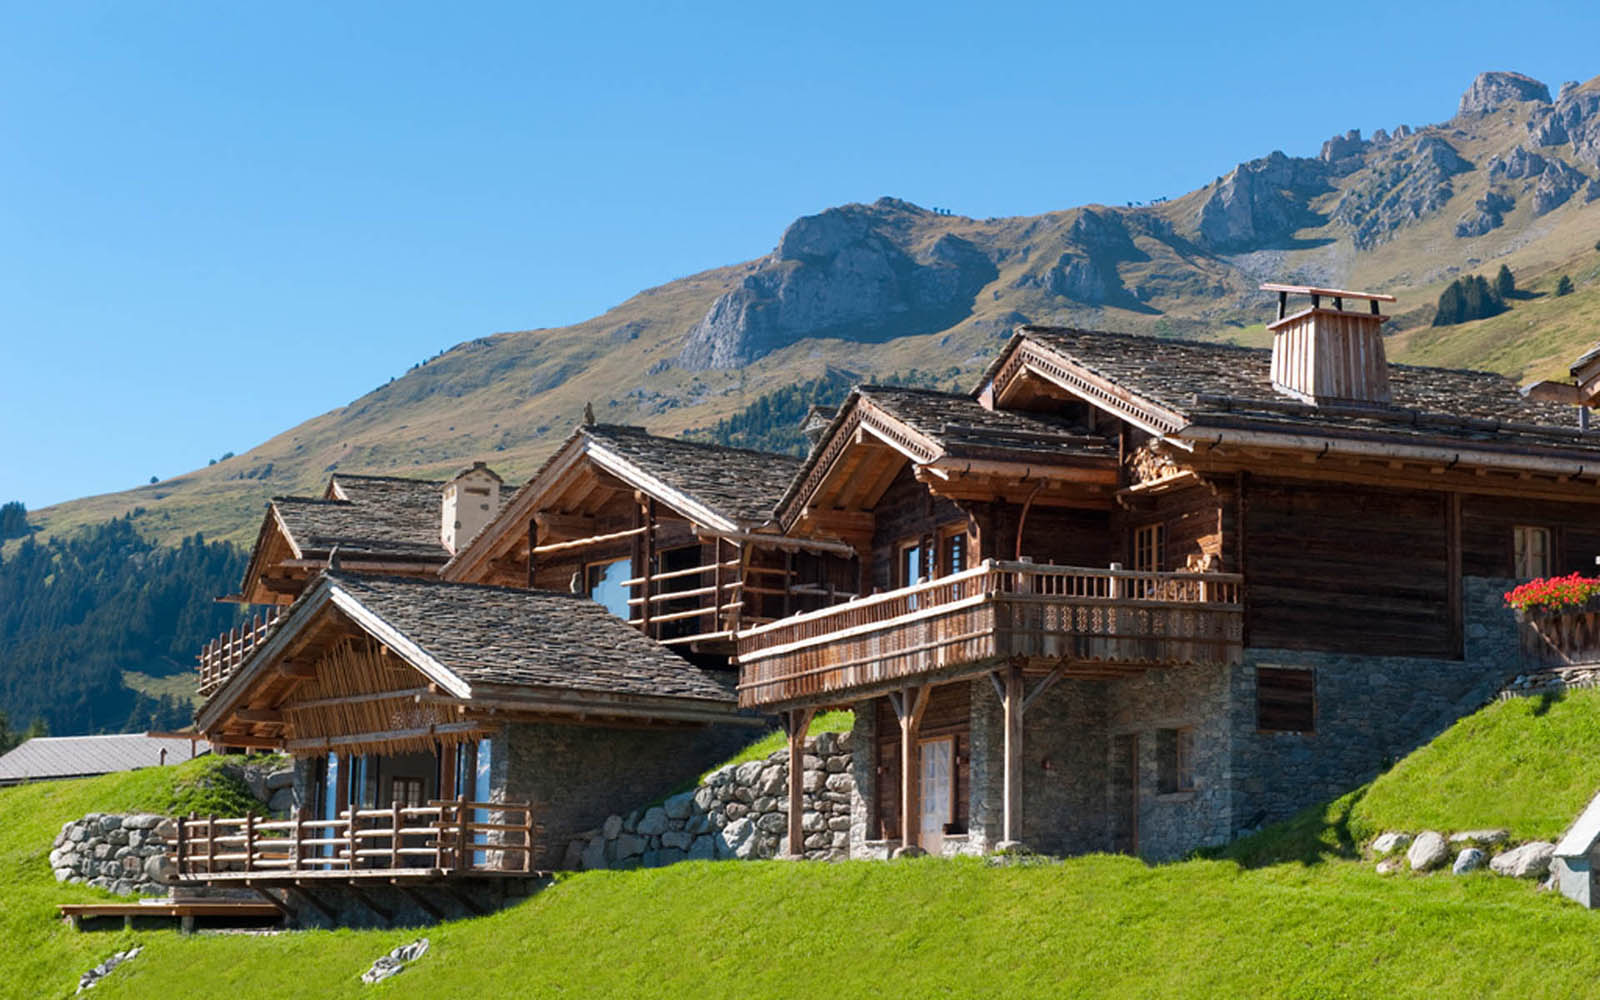 Les Trois Couronnes  EcoFriendly Chalet In Verbier  iDesignArch  Interior Design